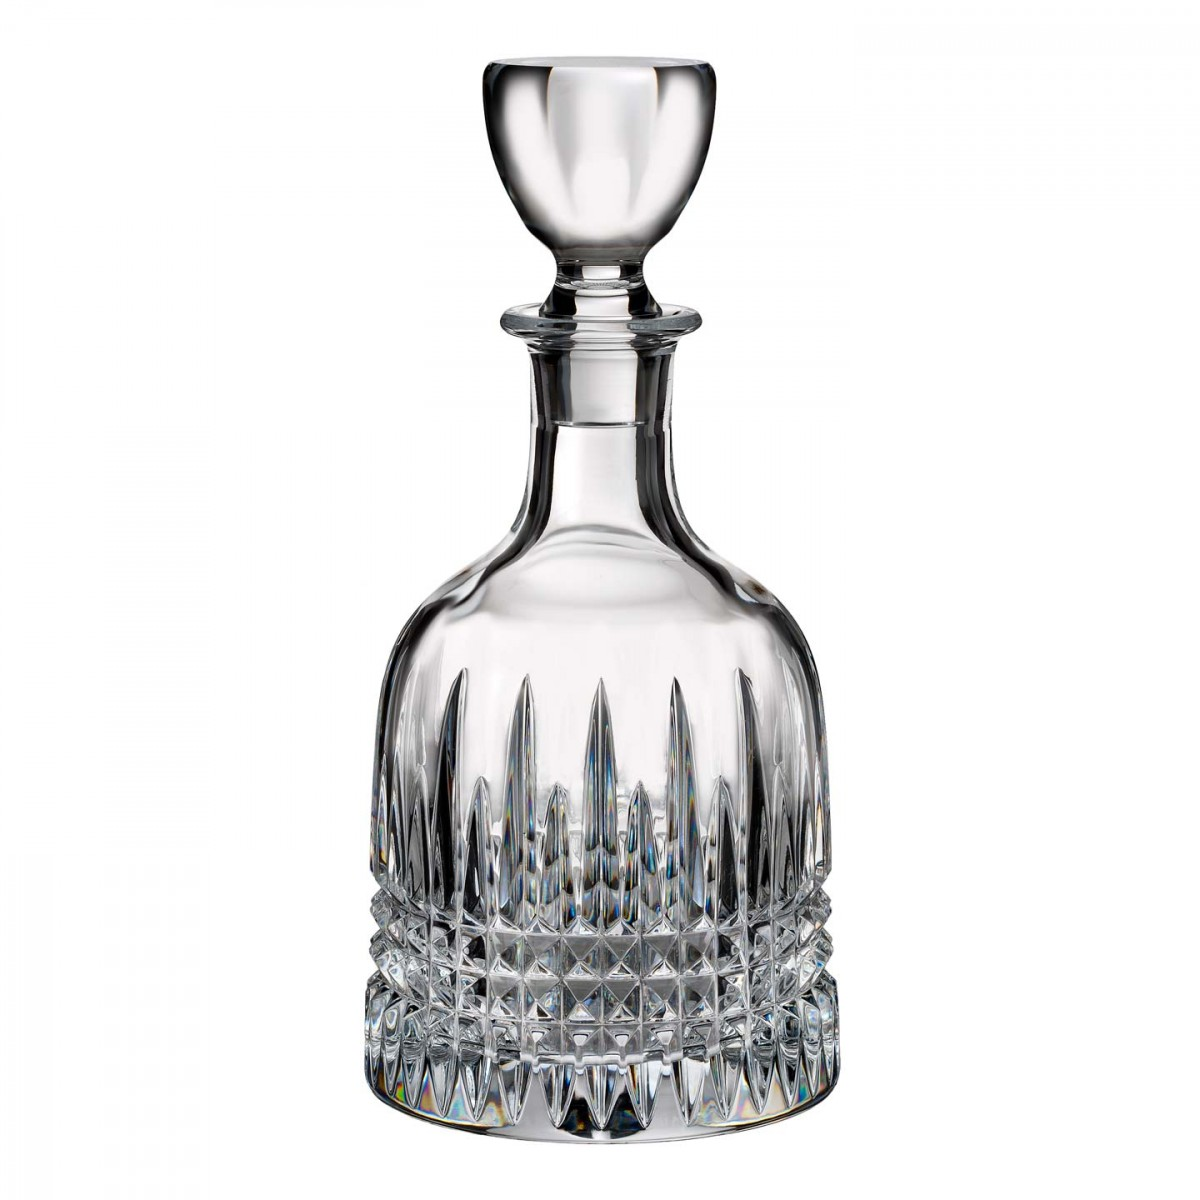 Waterford Crystal, Lismore Diamond Bottle Crystal Decanter